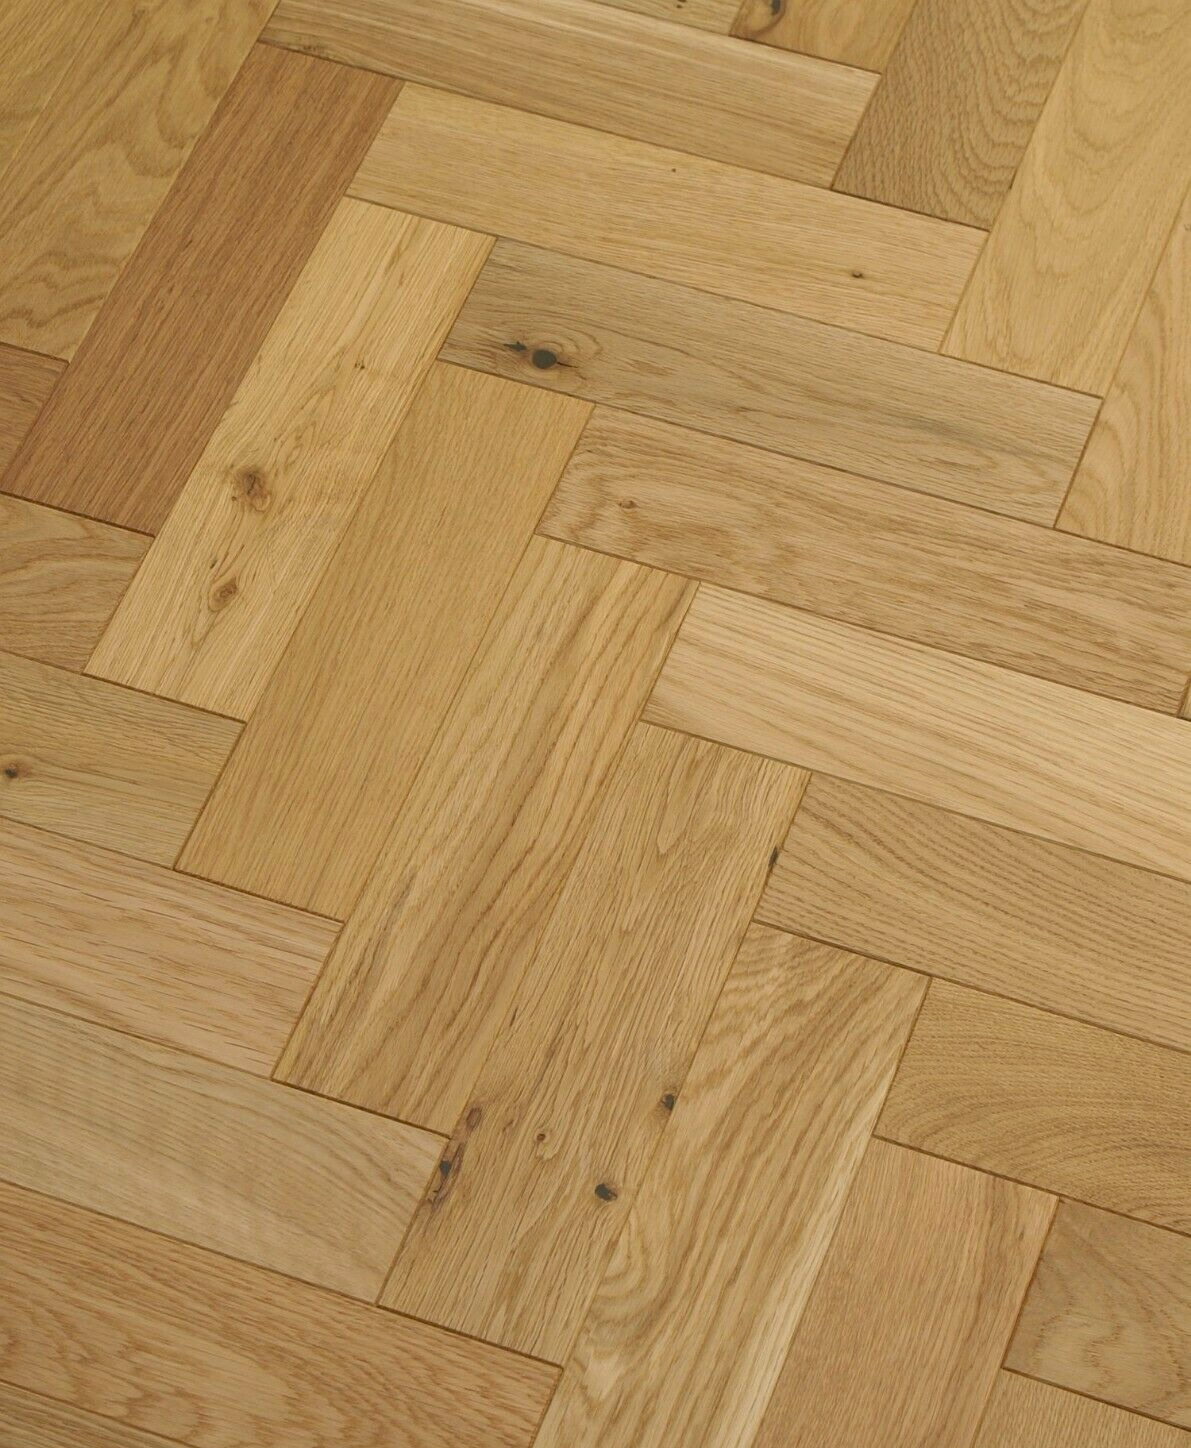 Riviera 18/3 x 80mm Natural Brushed Oak Herringbone Engineered